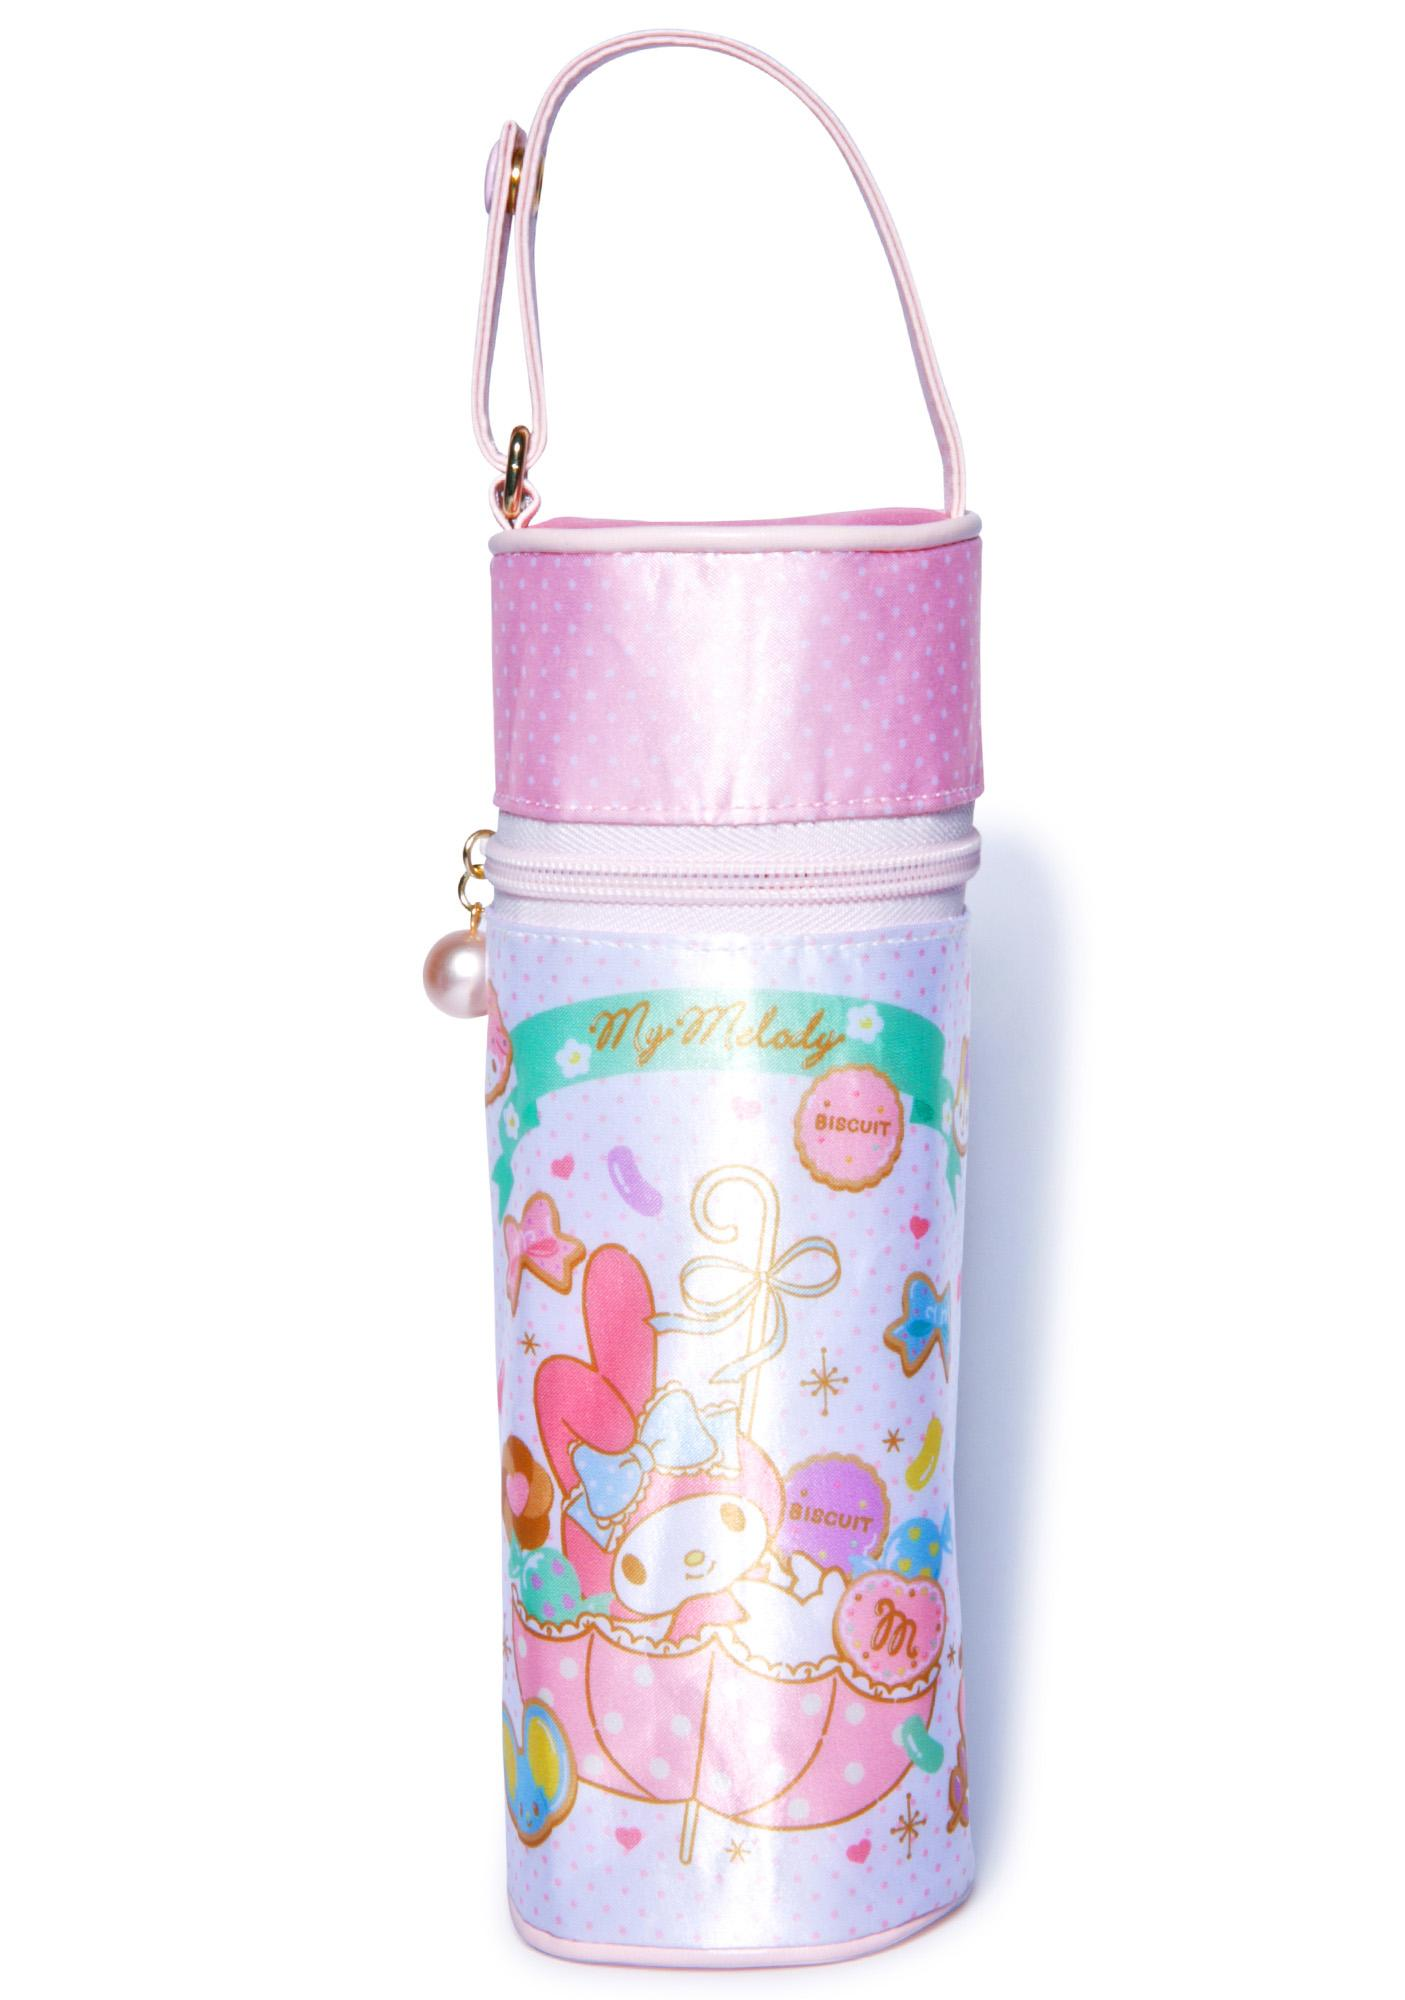 Sanrio My Melody Bottle Cover